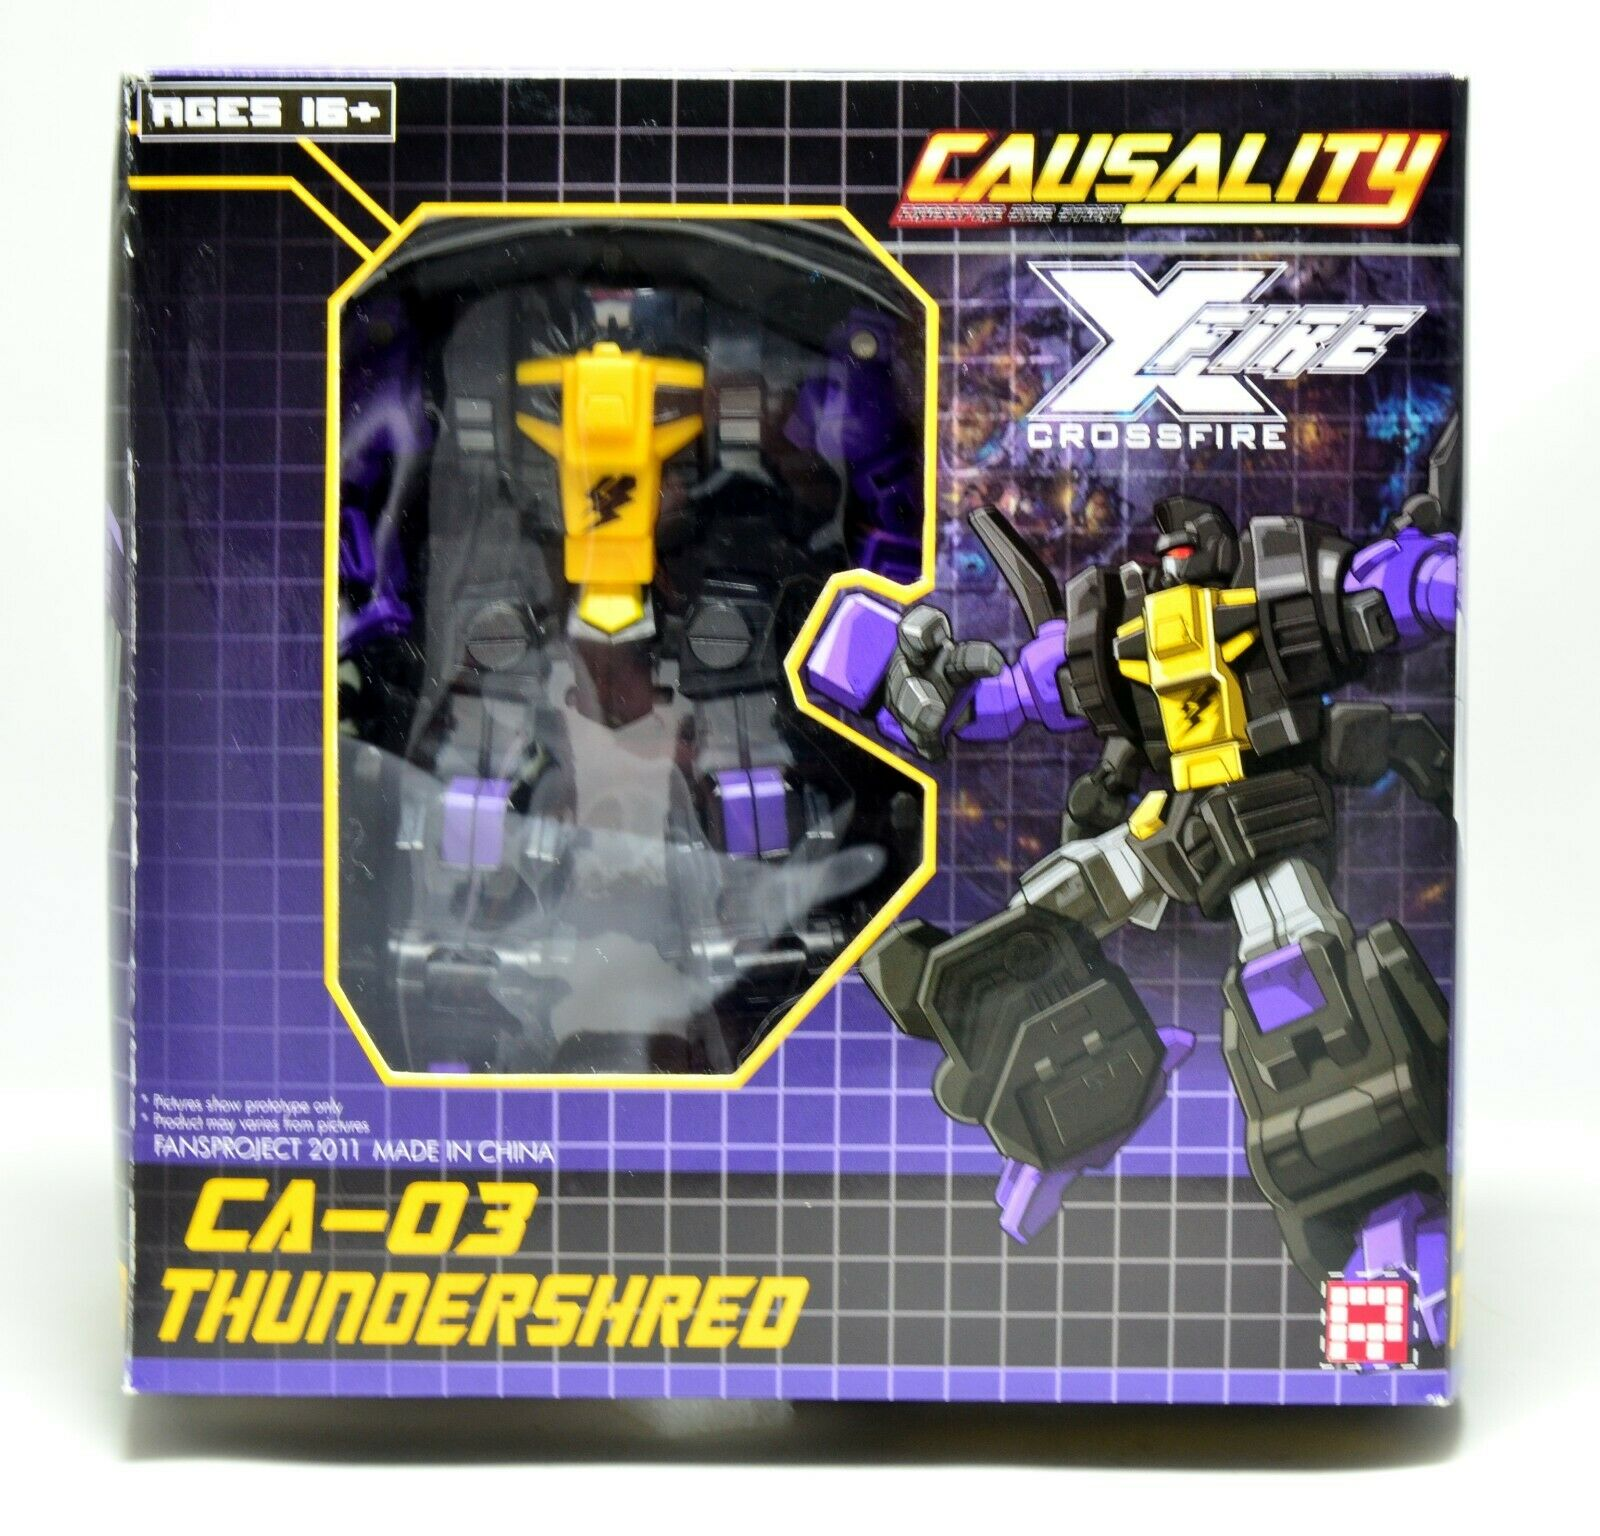 FANSPROJECT CA-03 Thundershrot - Causality X-Fire Series - Boxed - Complete